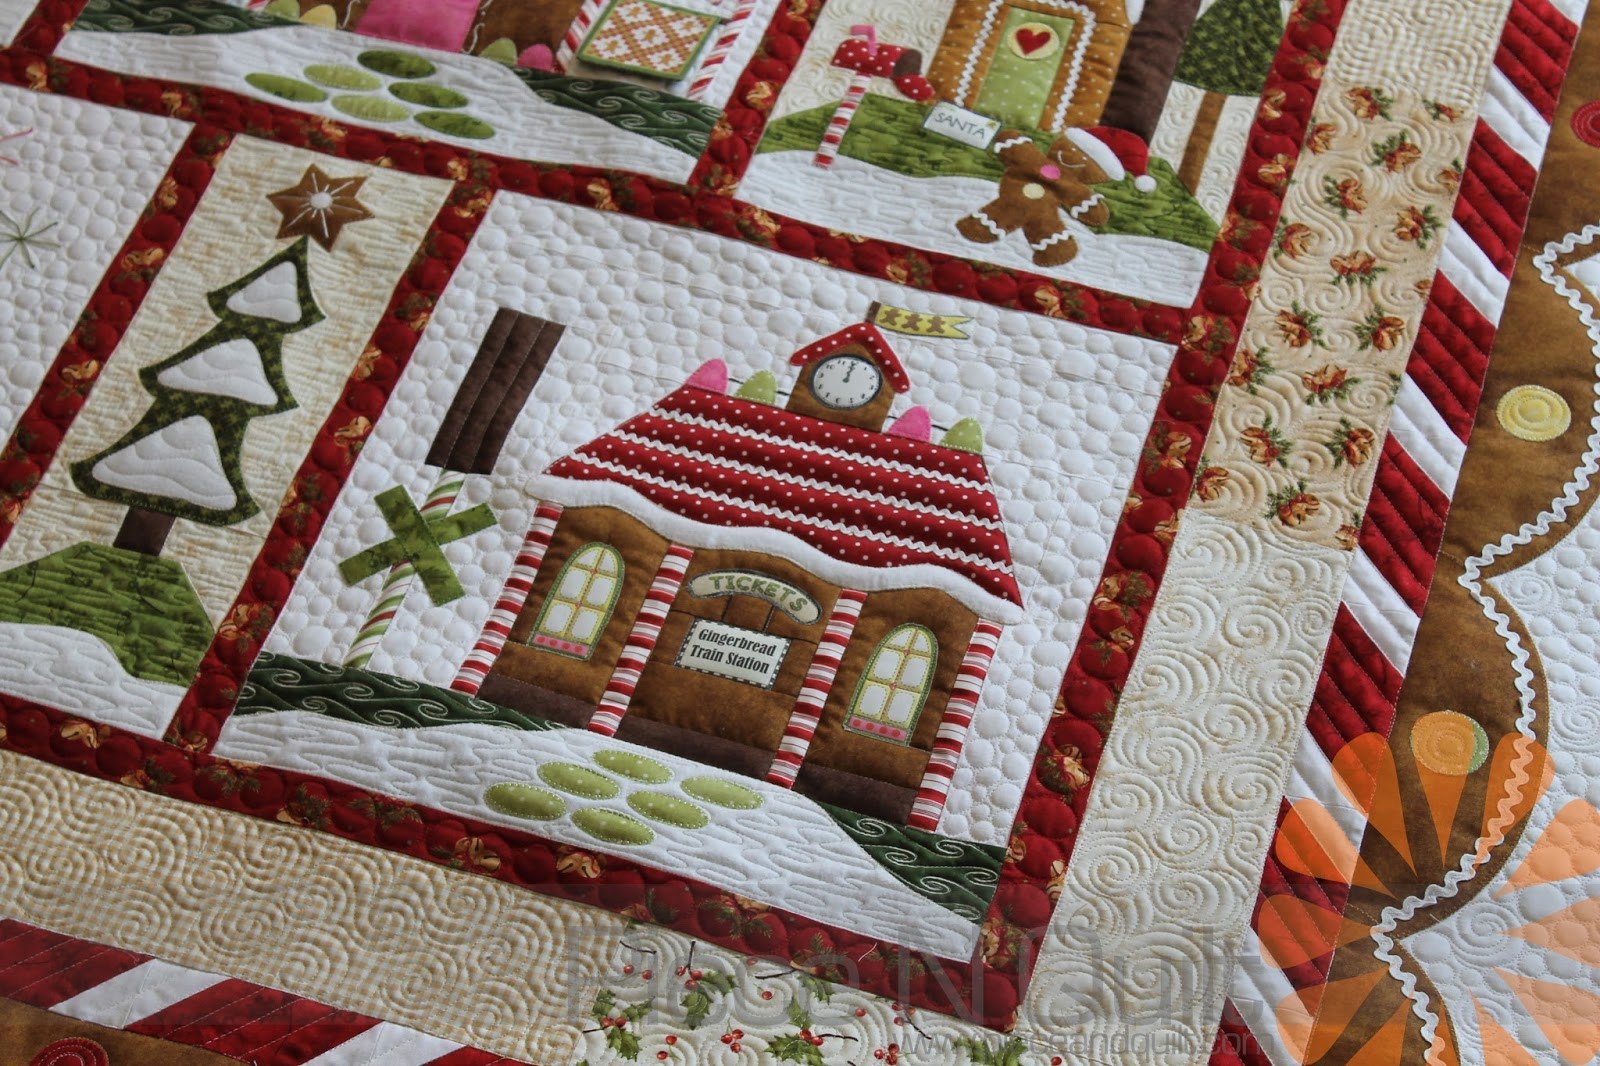 Christmas Quilts Are Just As Adorable As Ever This Fun Quilt Is Called Gingerbread Village And I Custom Machine Quilted This Quilt This Past Week For